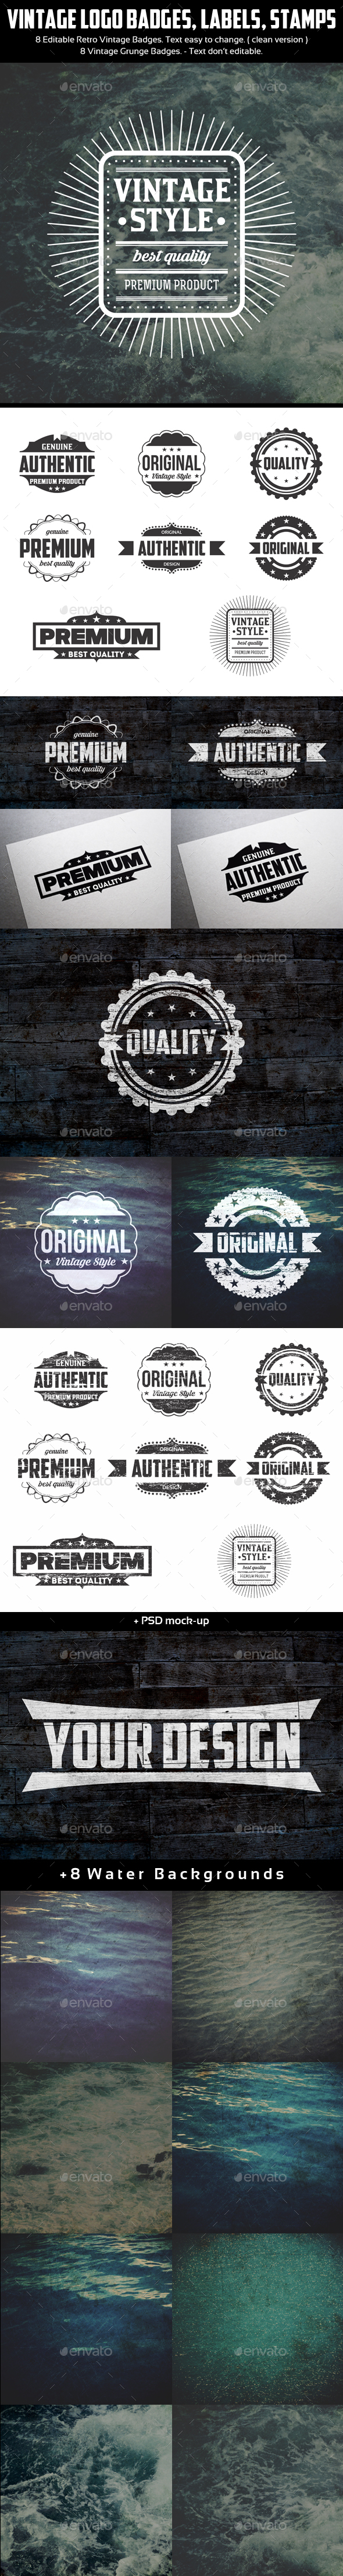 Authentic Vintage Badges & Labels - Badges & Stickers Web Elements